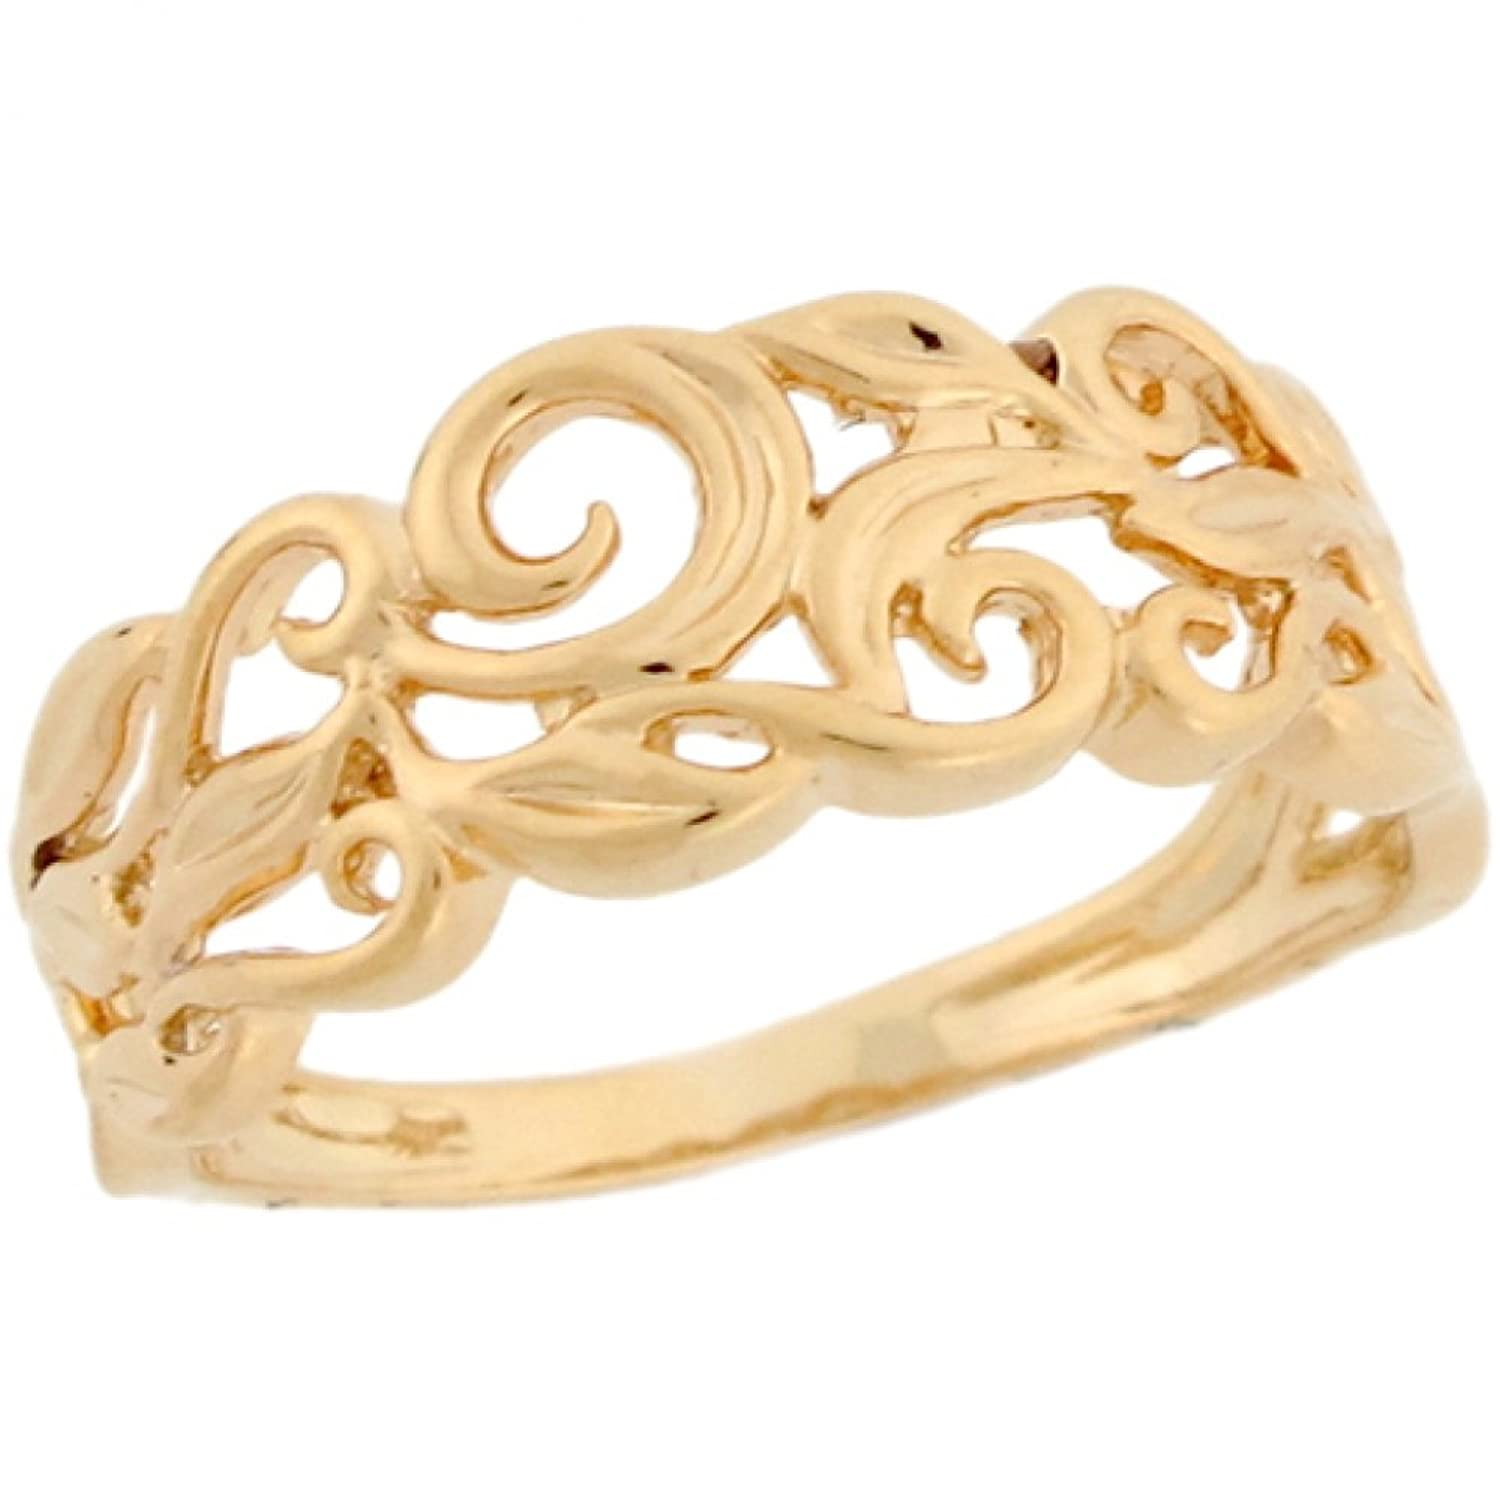 gold products treasure front rose jewelry designer jewellery journey rings misa ring mermaid